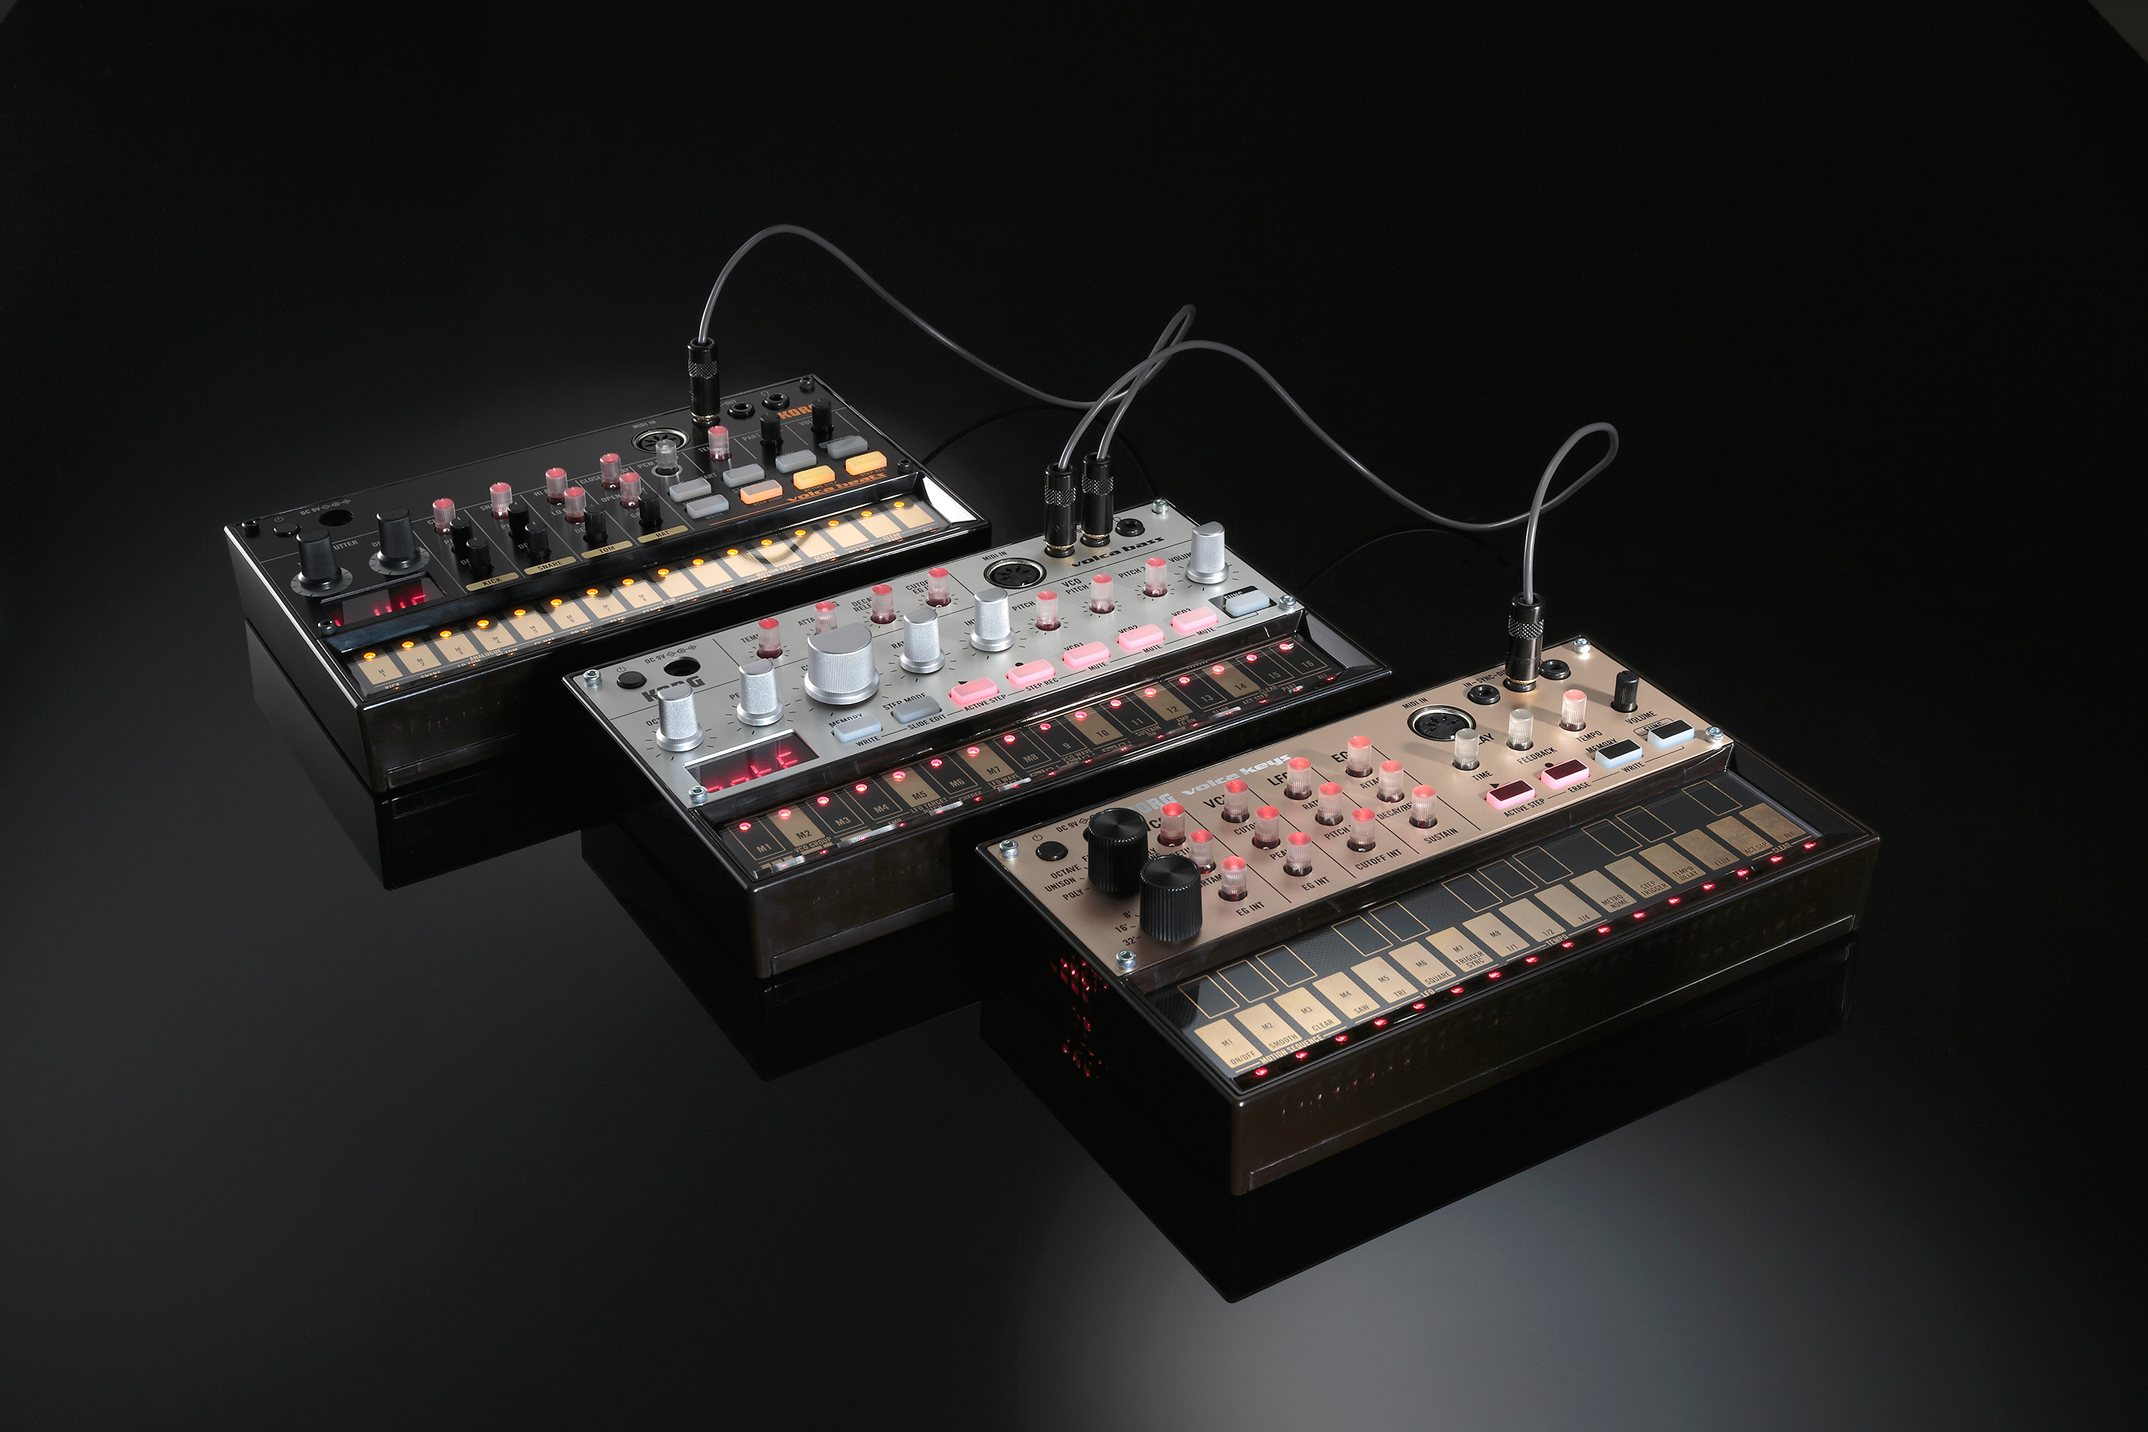 150 korg volca analog synth bass drum grooveboxes with midi official details pics video. Black Bedroom Furniture Sets. Home Design Ideas